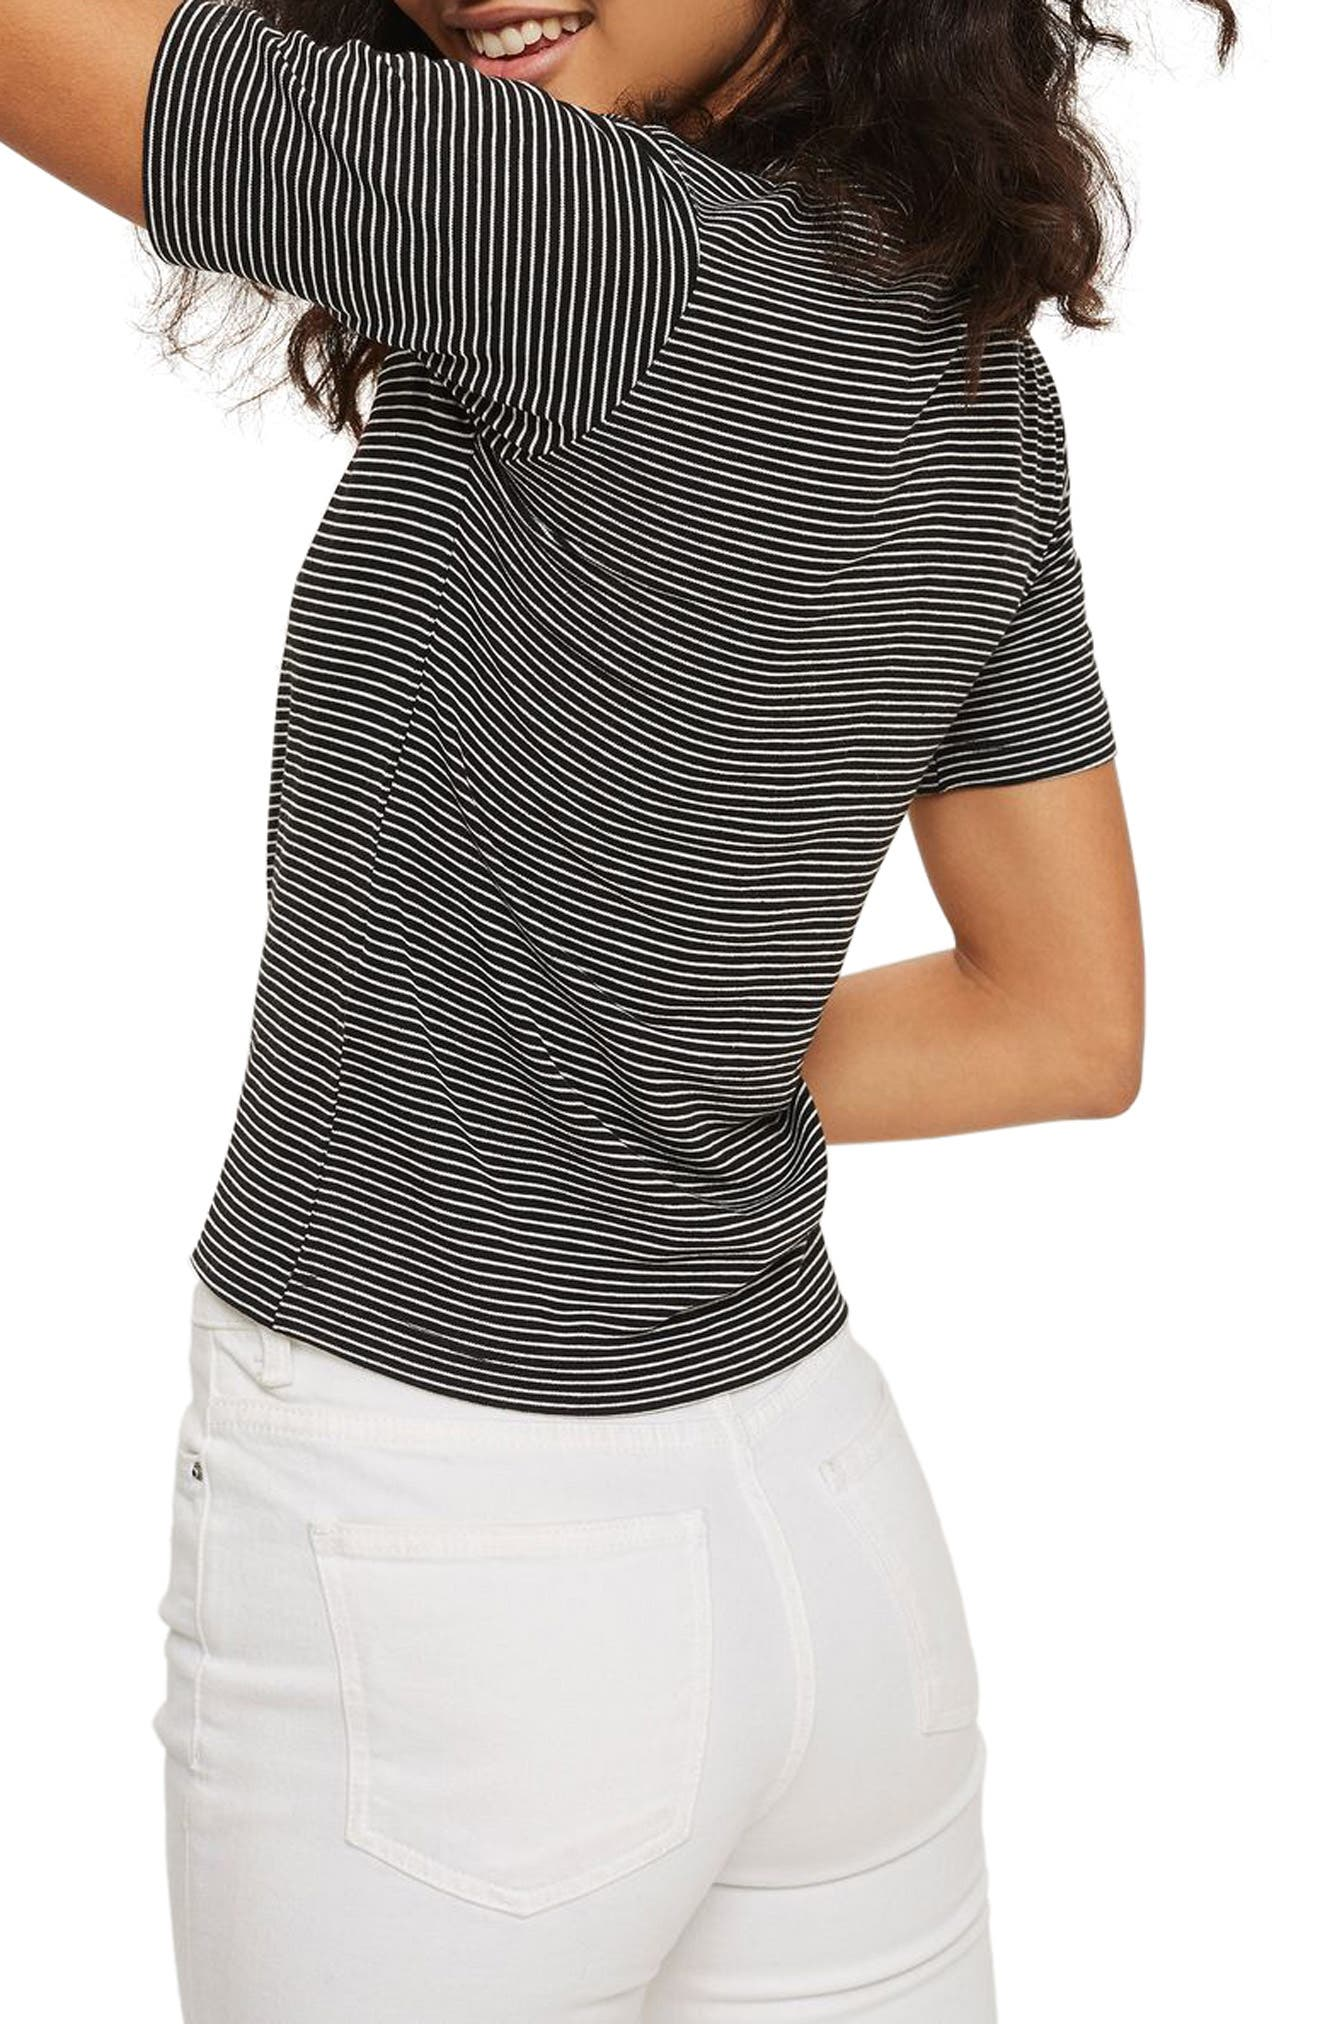 Oui Non Embroidered Tee,                             Alternate thumbnail 3, color,                             Black Multi